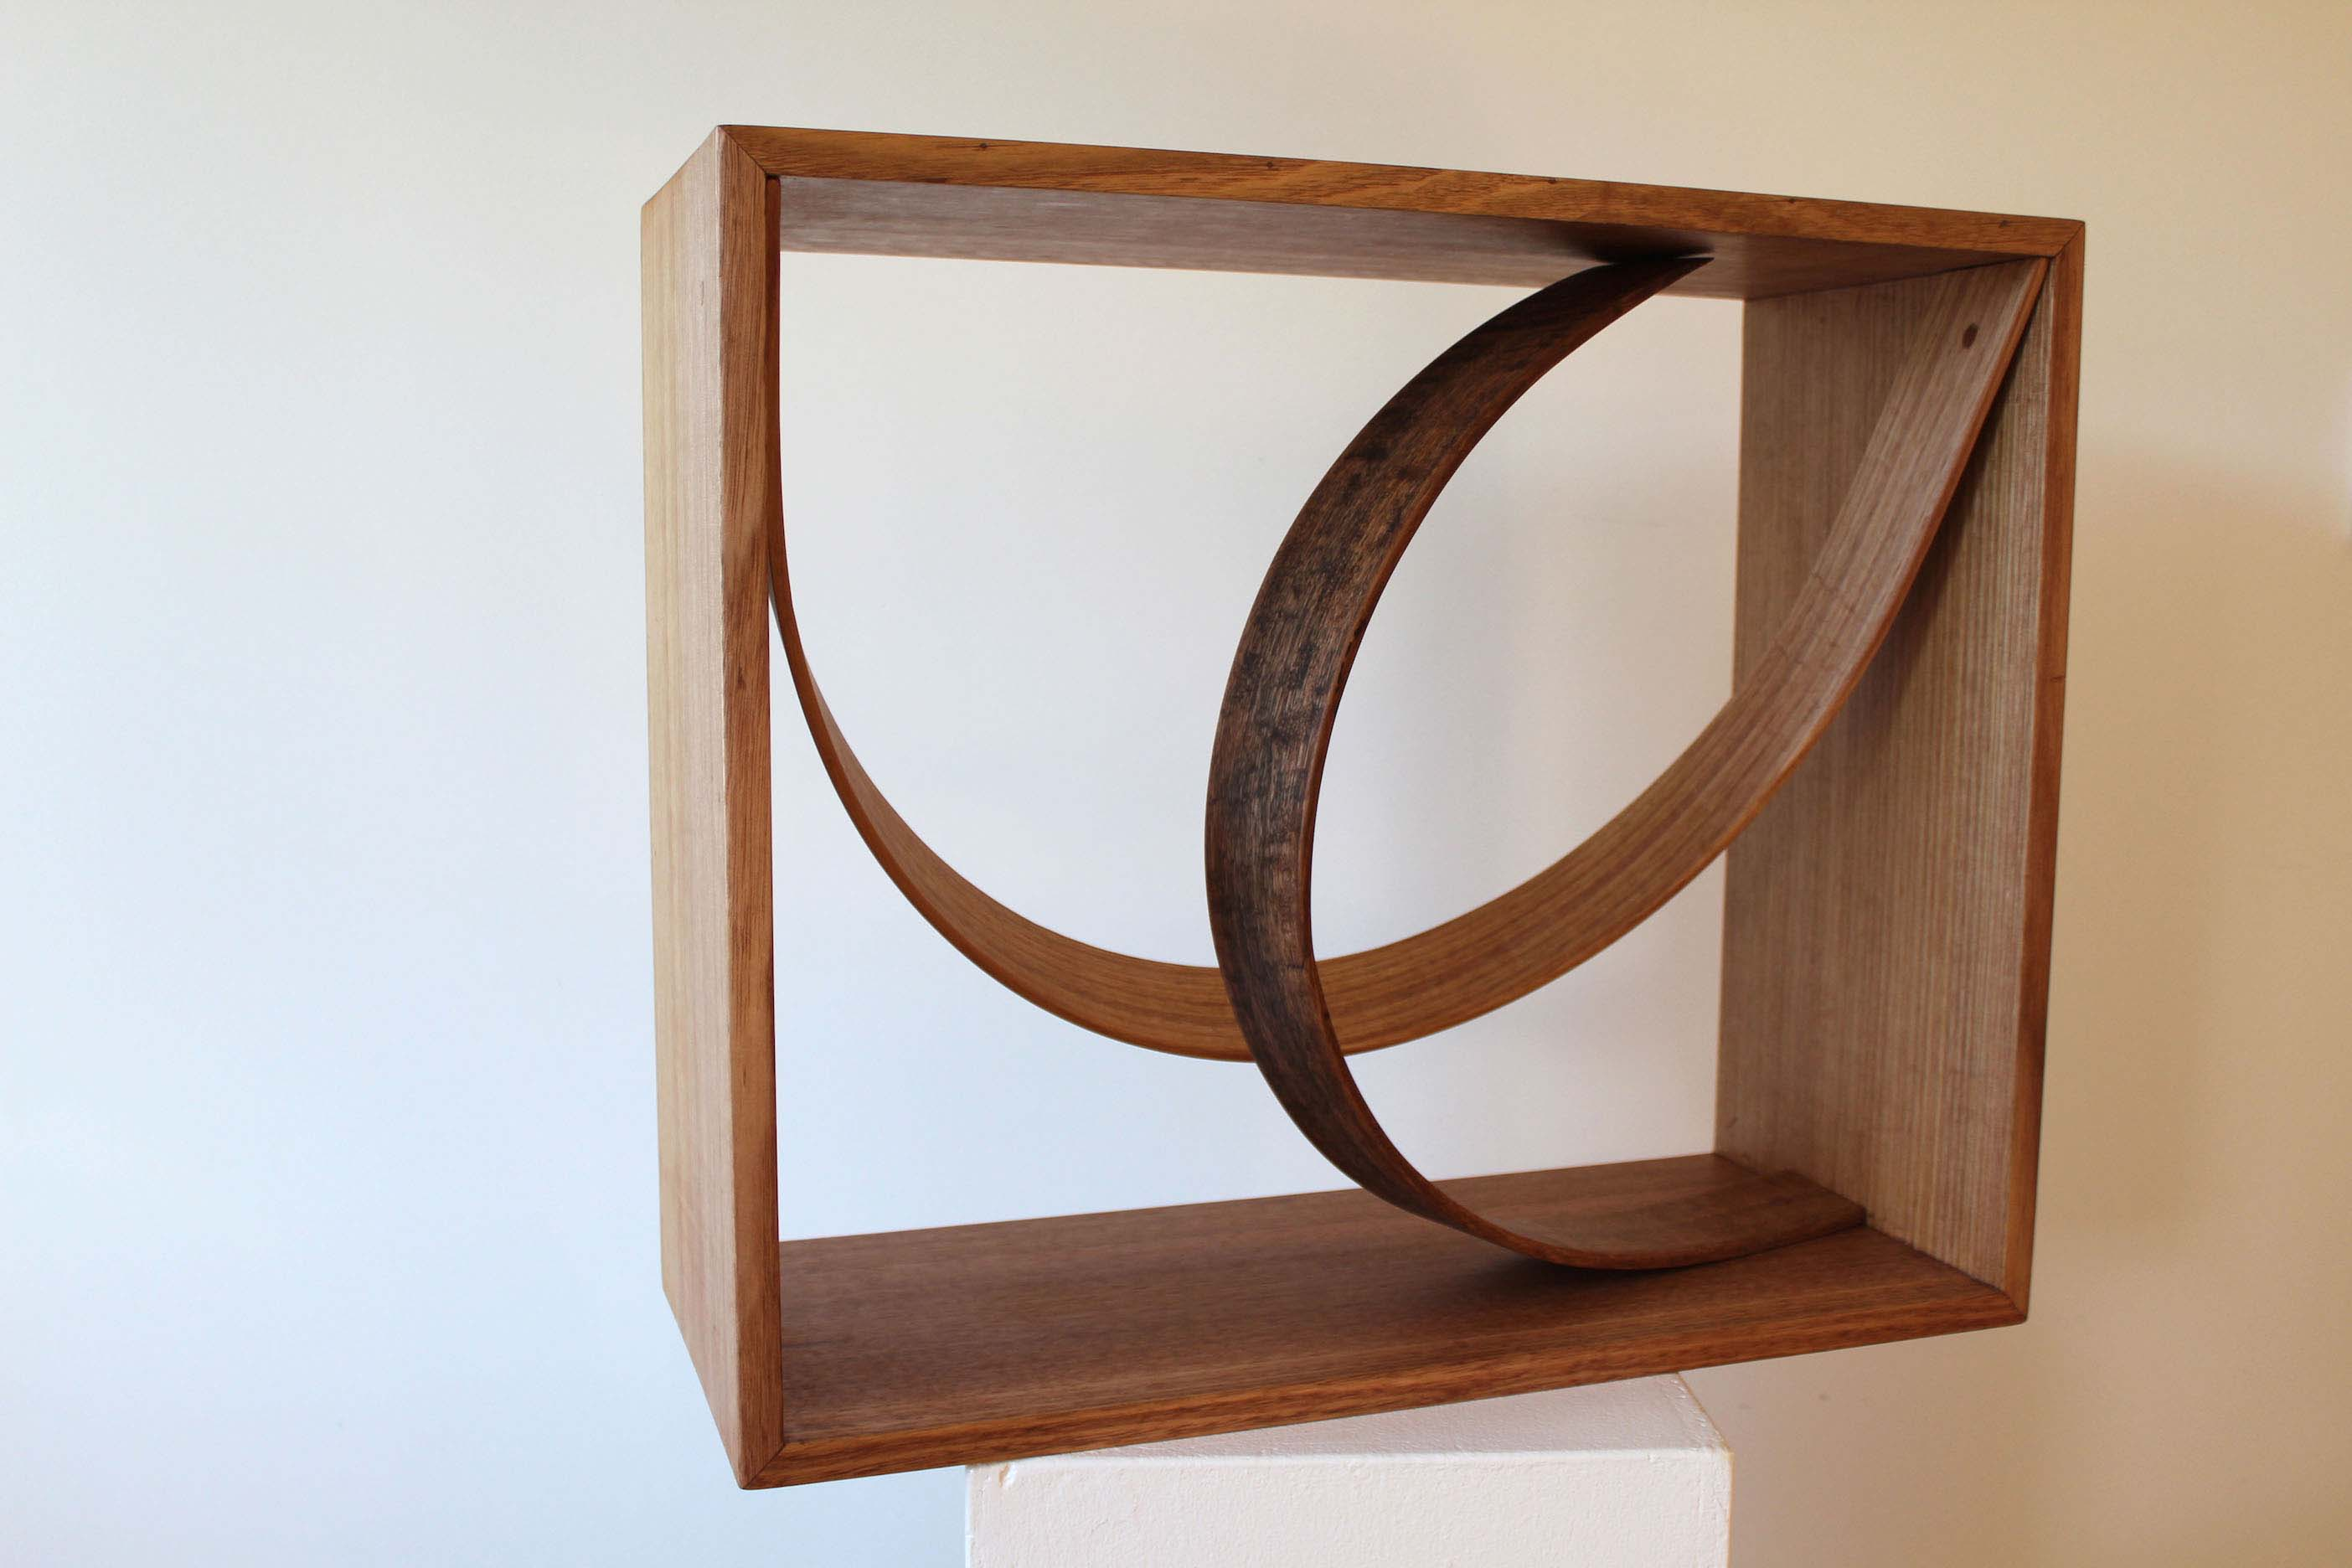 stool,table,sculpture